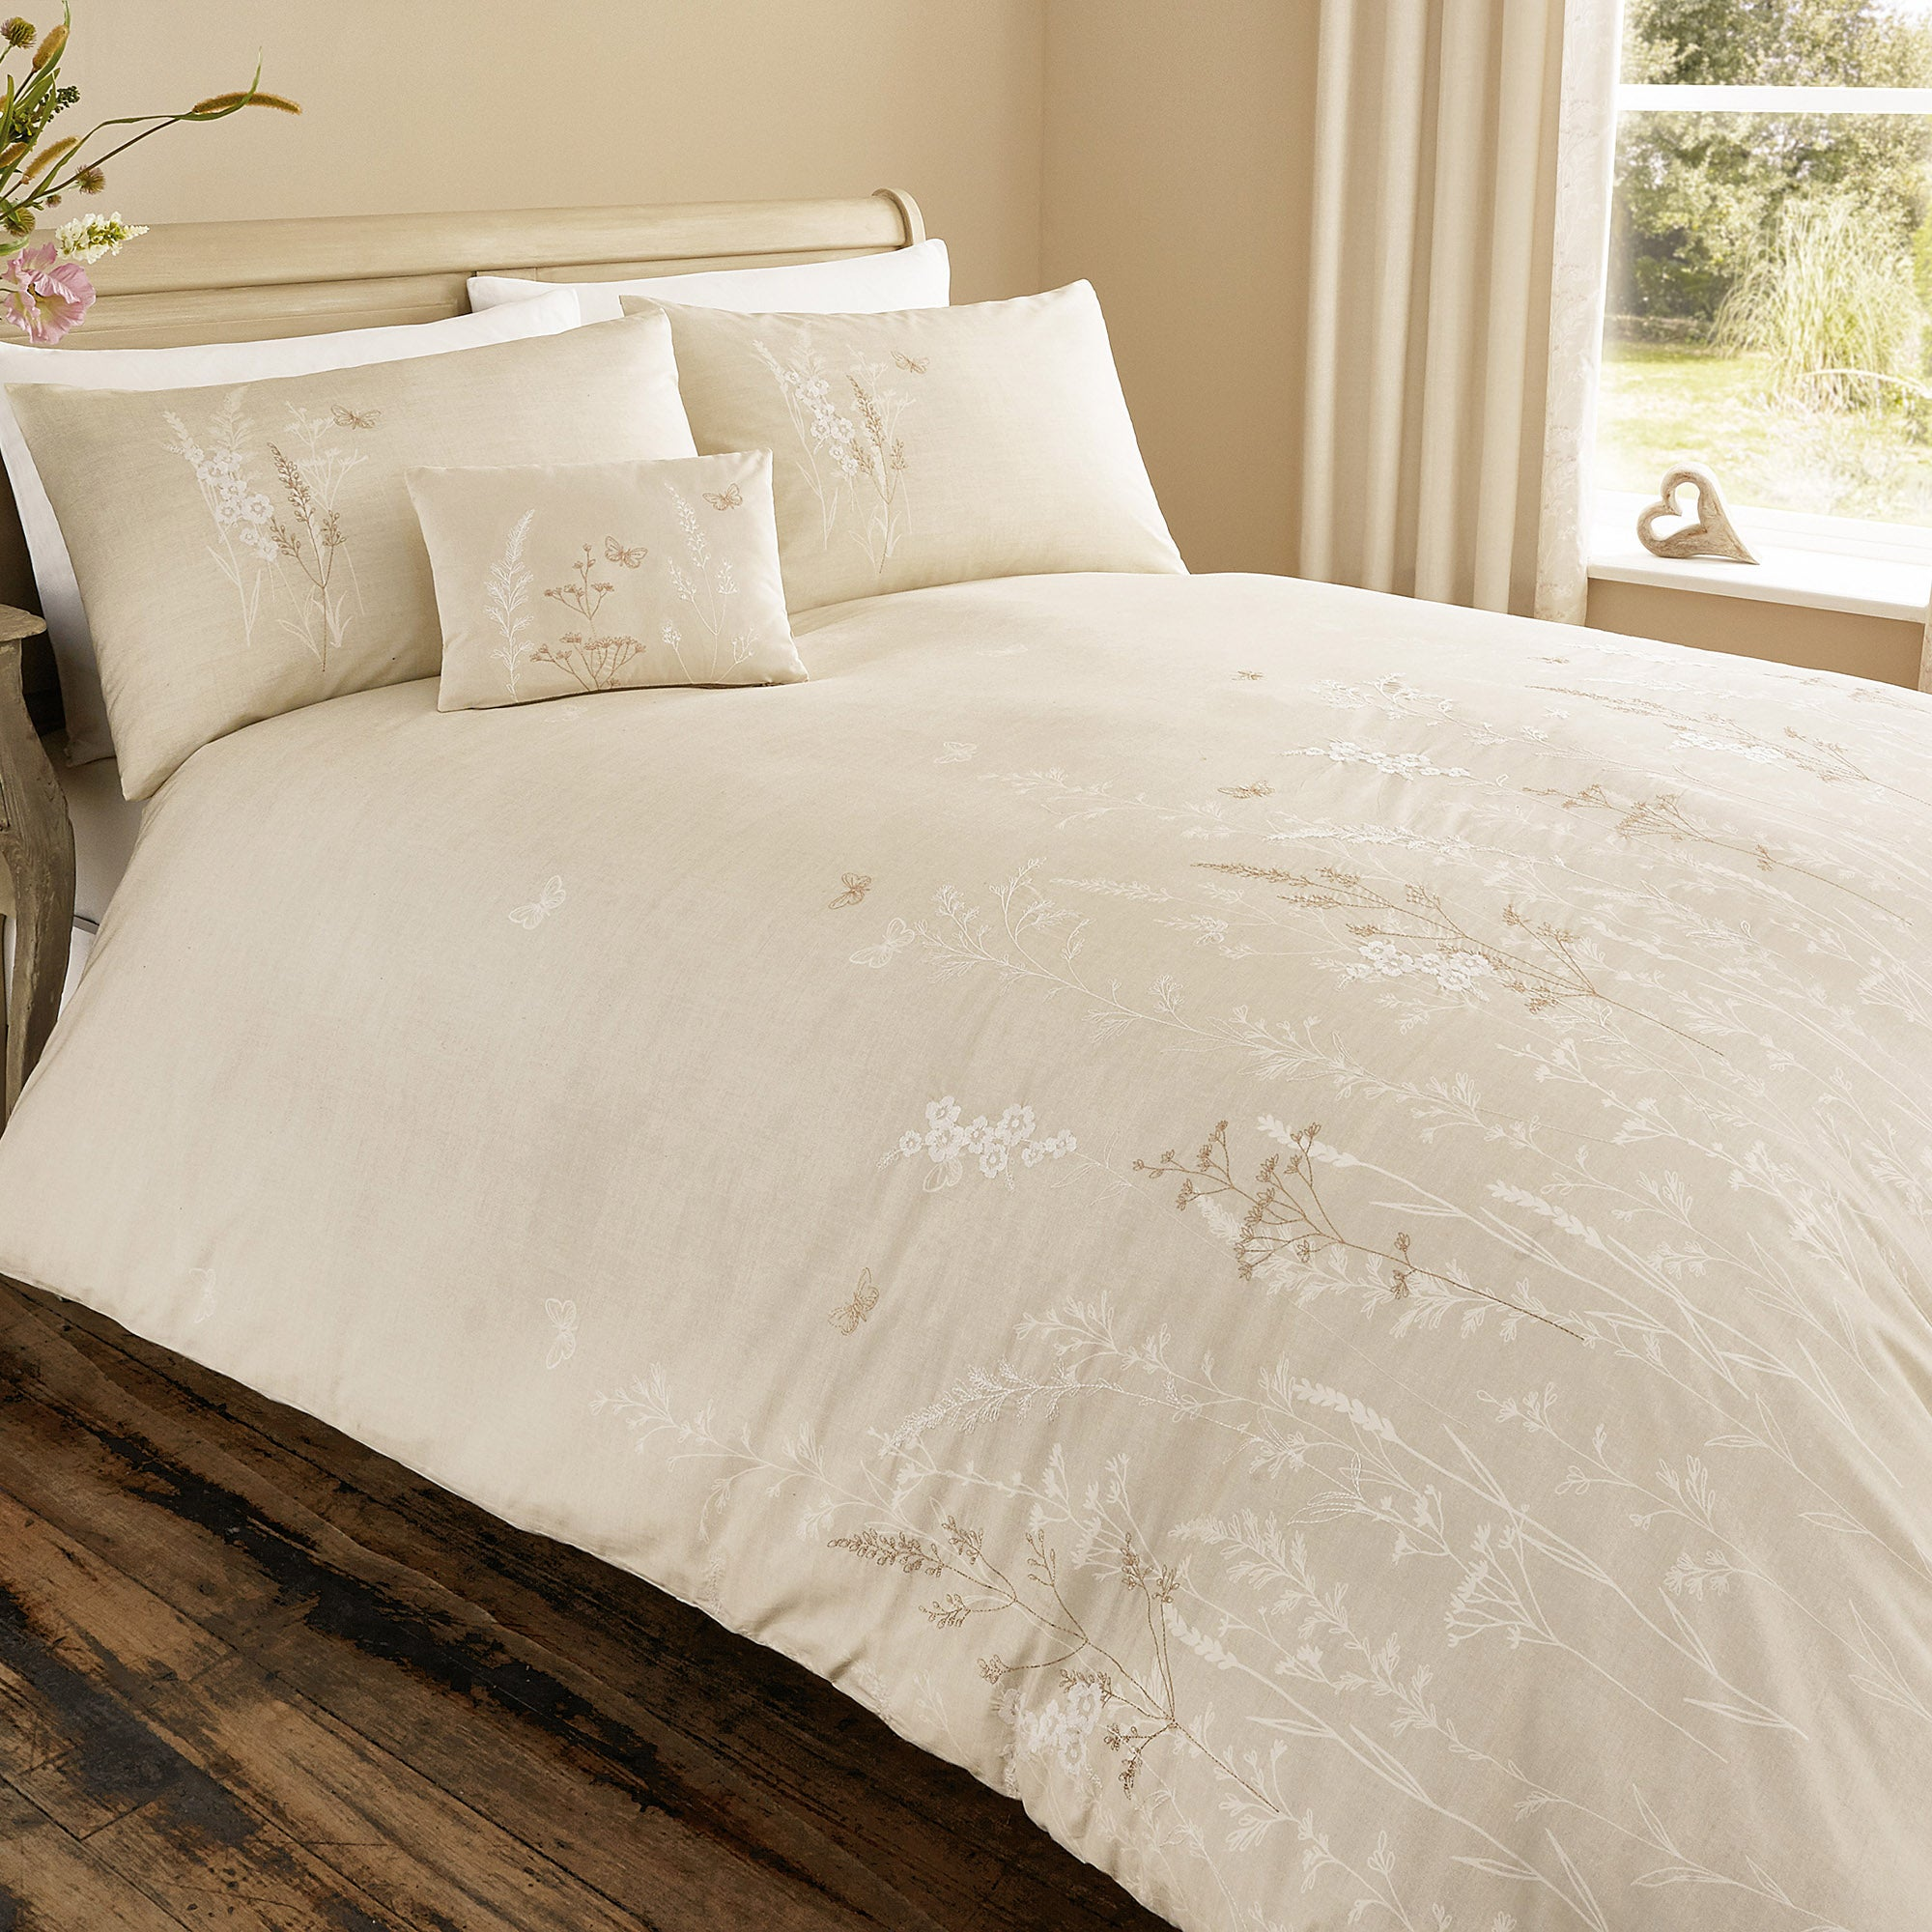 Pasture Natural Bed Linen Collection